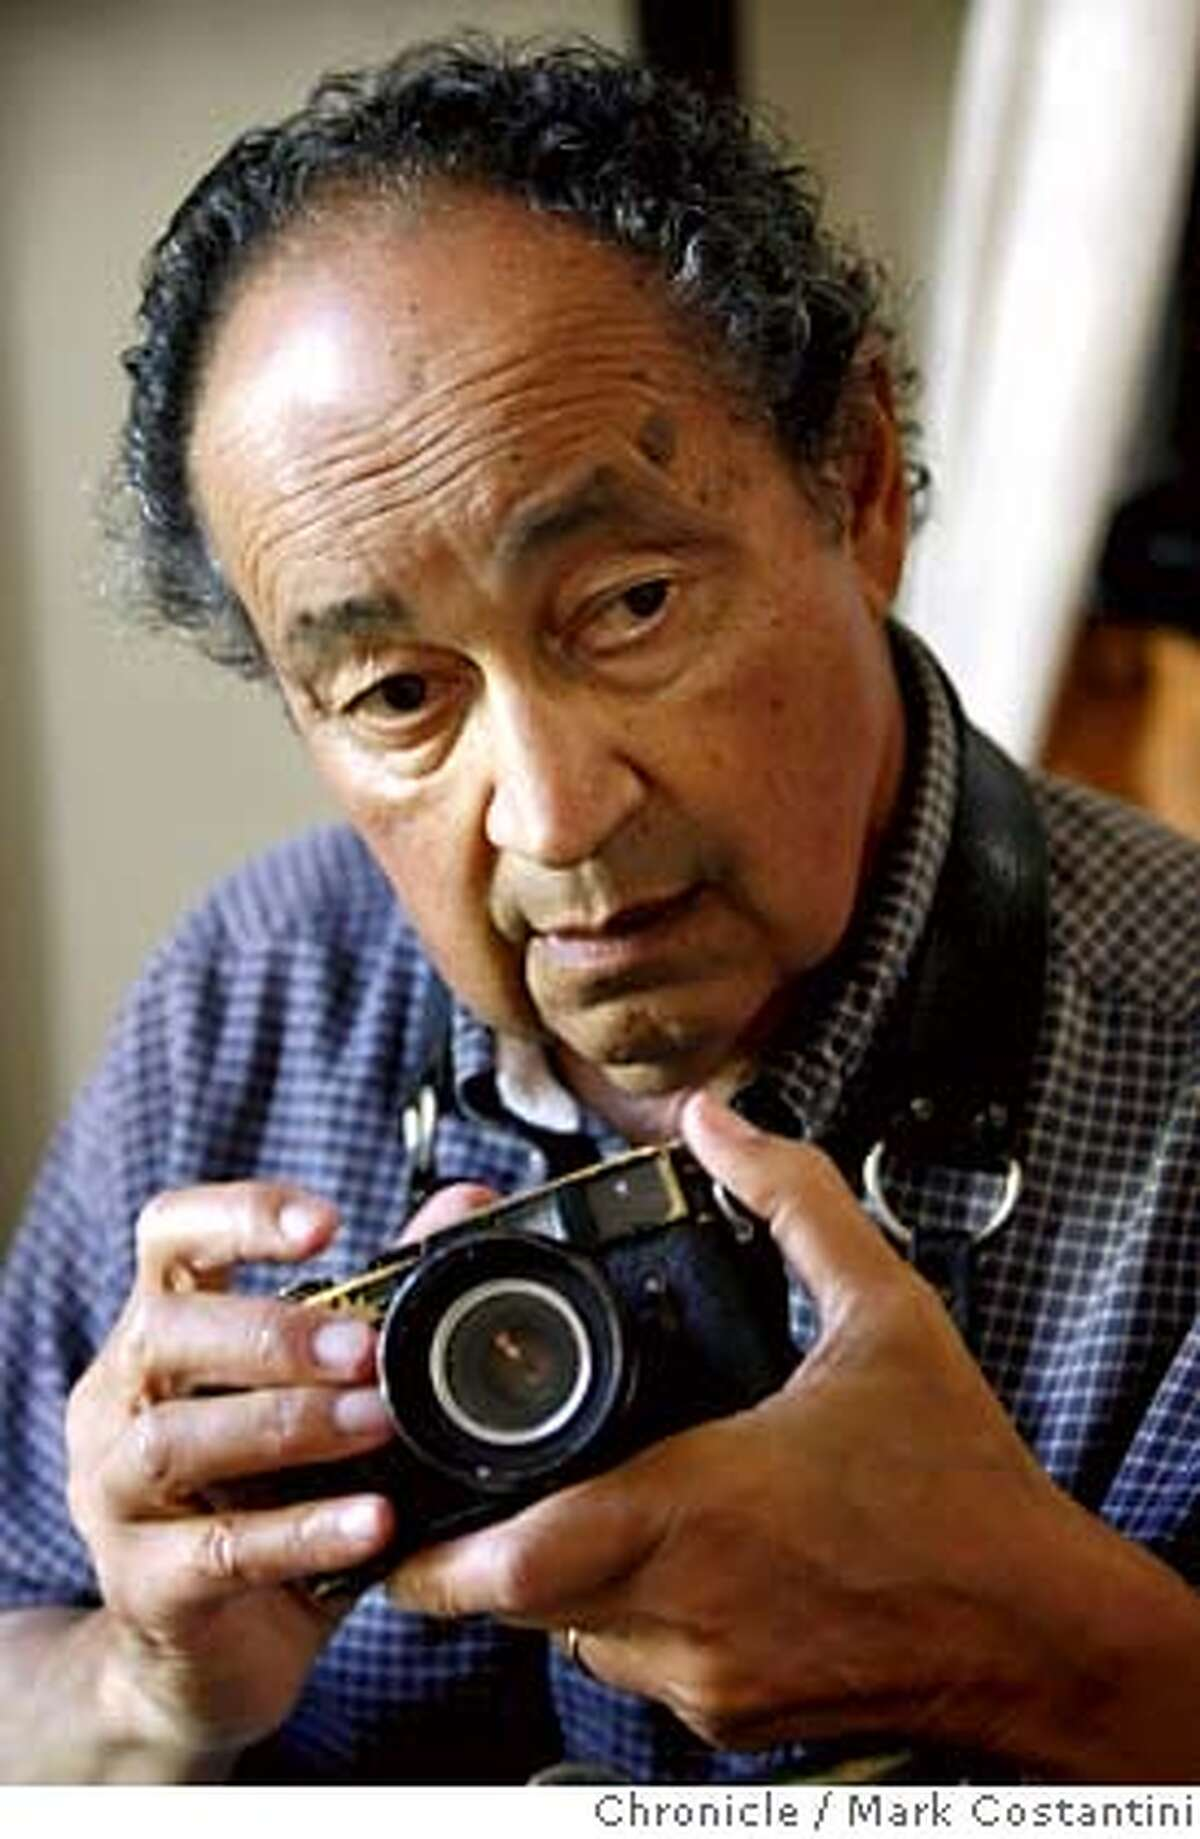 2006 Portrait of Fran Ortiz, former San Francisco Examiner photographer. Ortiz died Wednesday, Feb. 7 while recovering from surgery. Photo by Mark Costantini